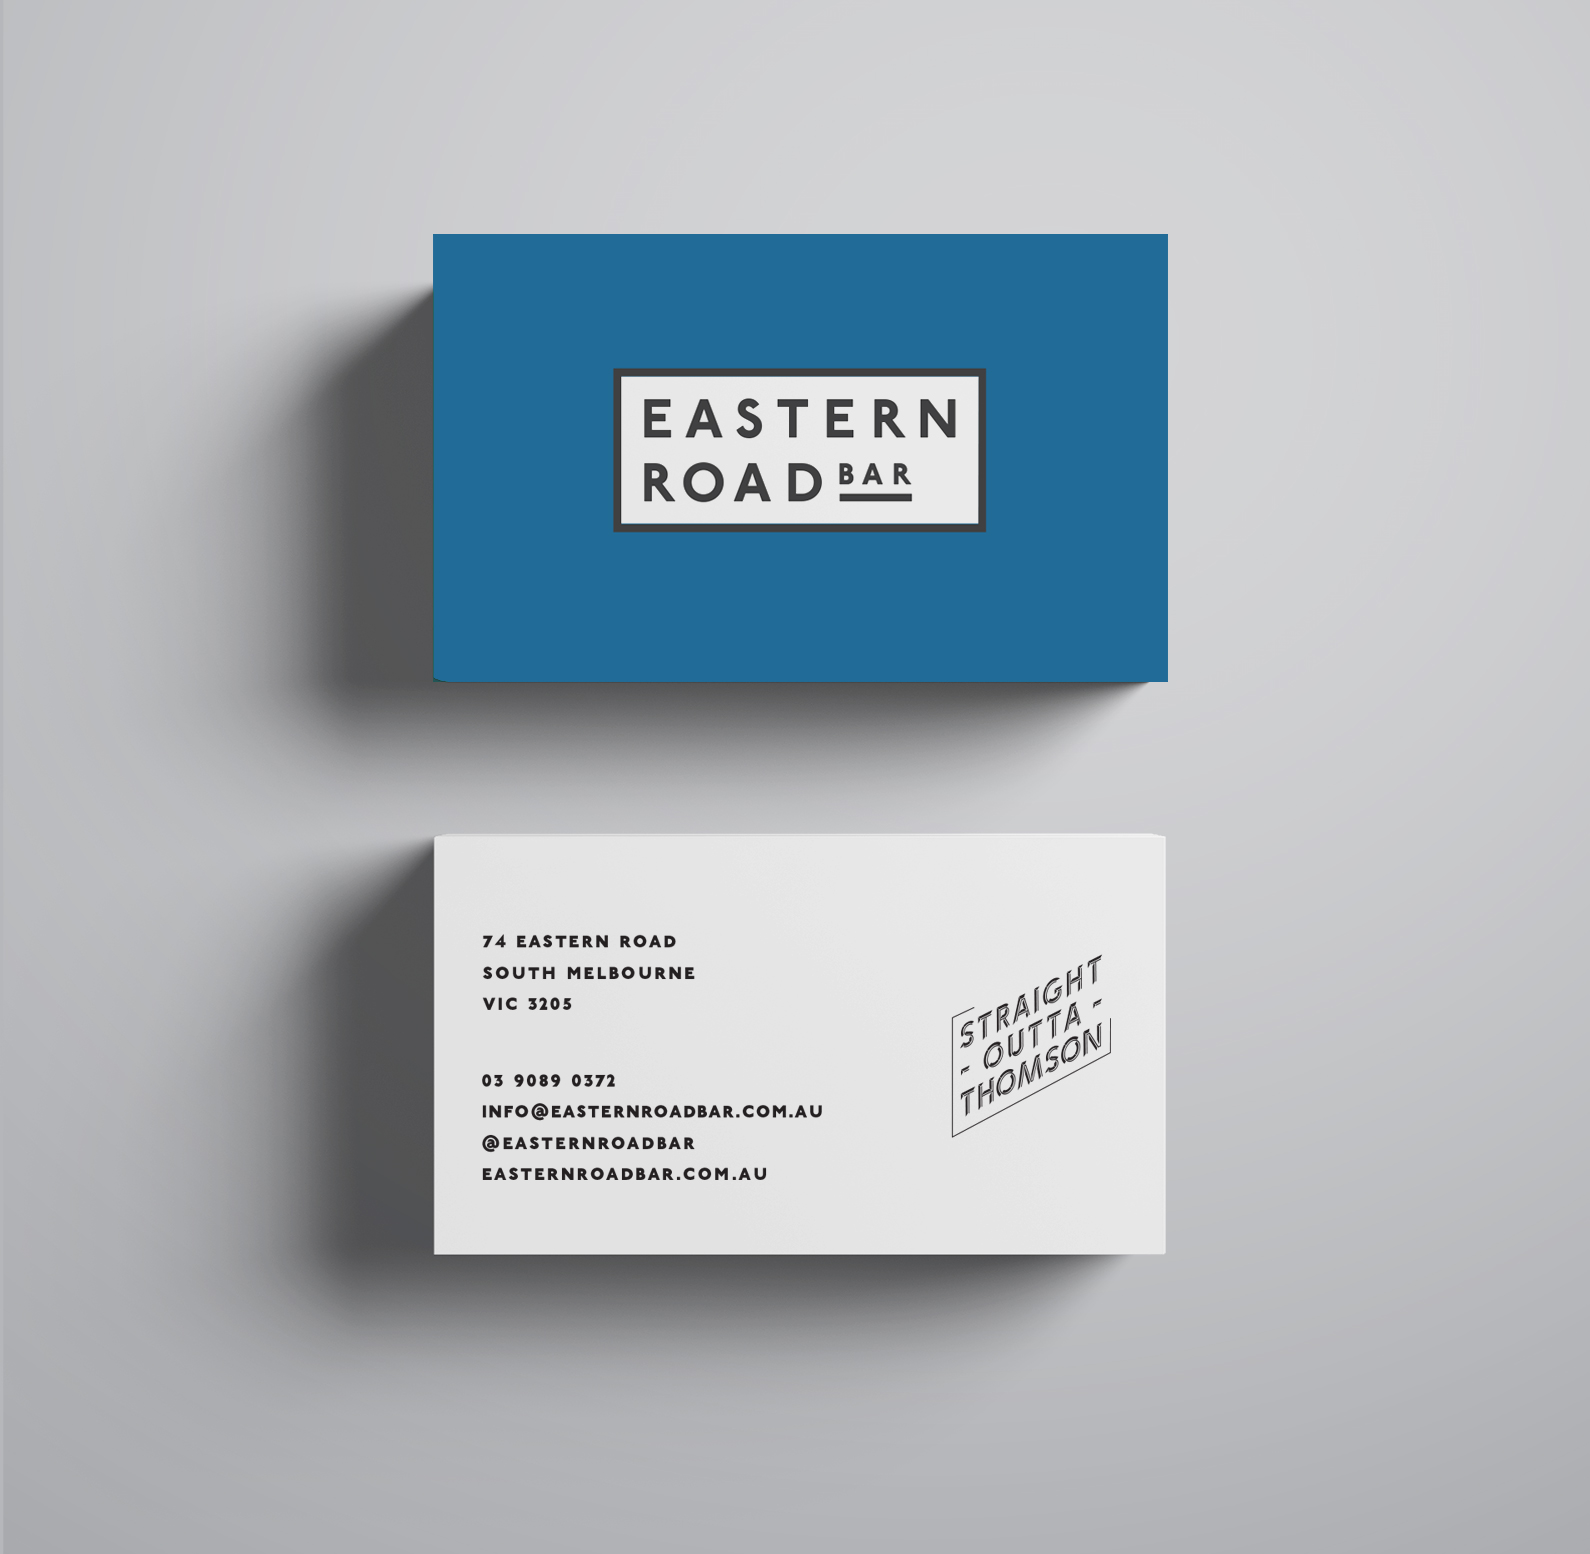 Studio-Mimi-Moon-Branding-&-design-Eastern-Road-Larder